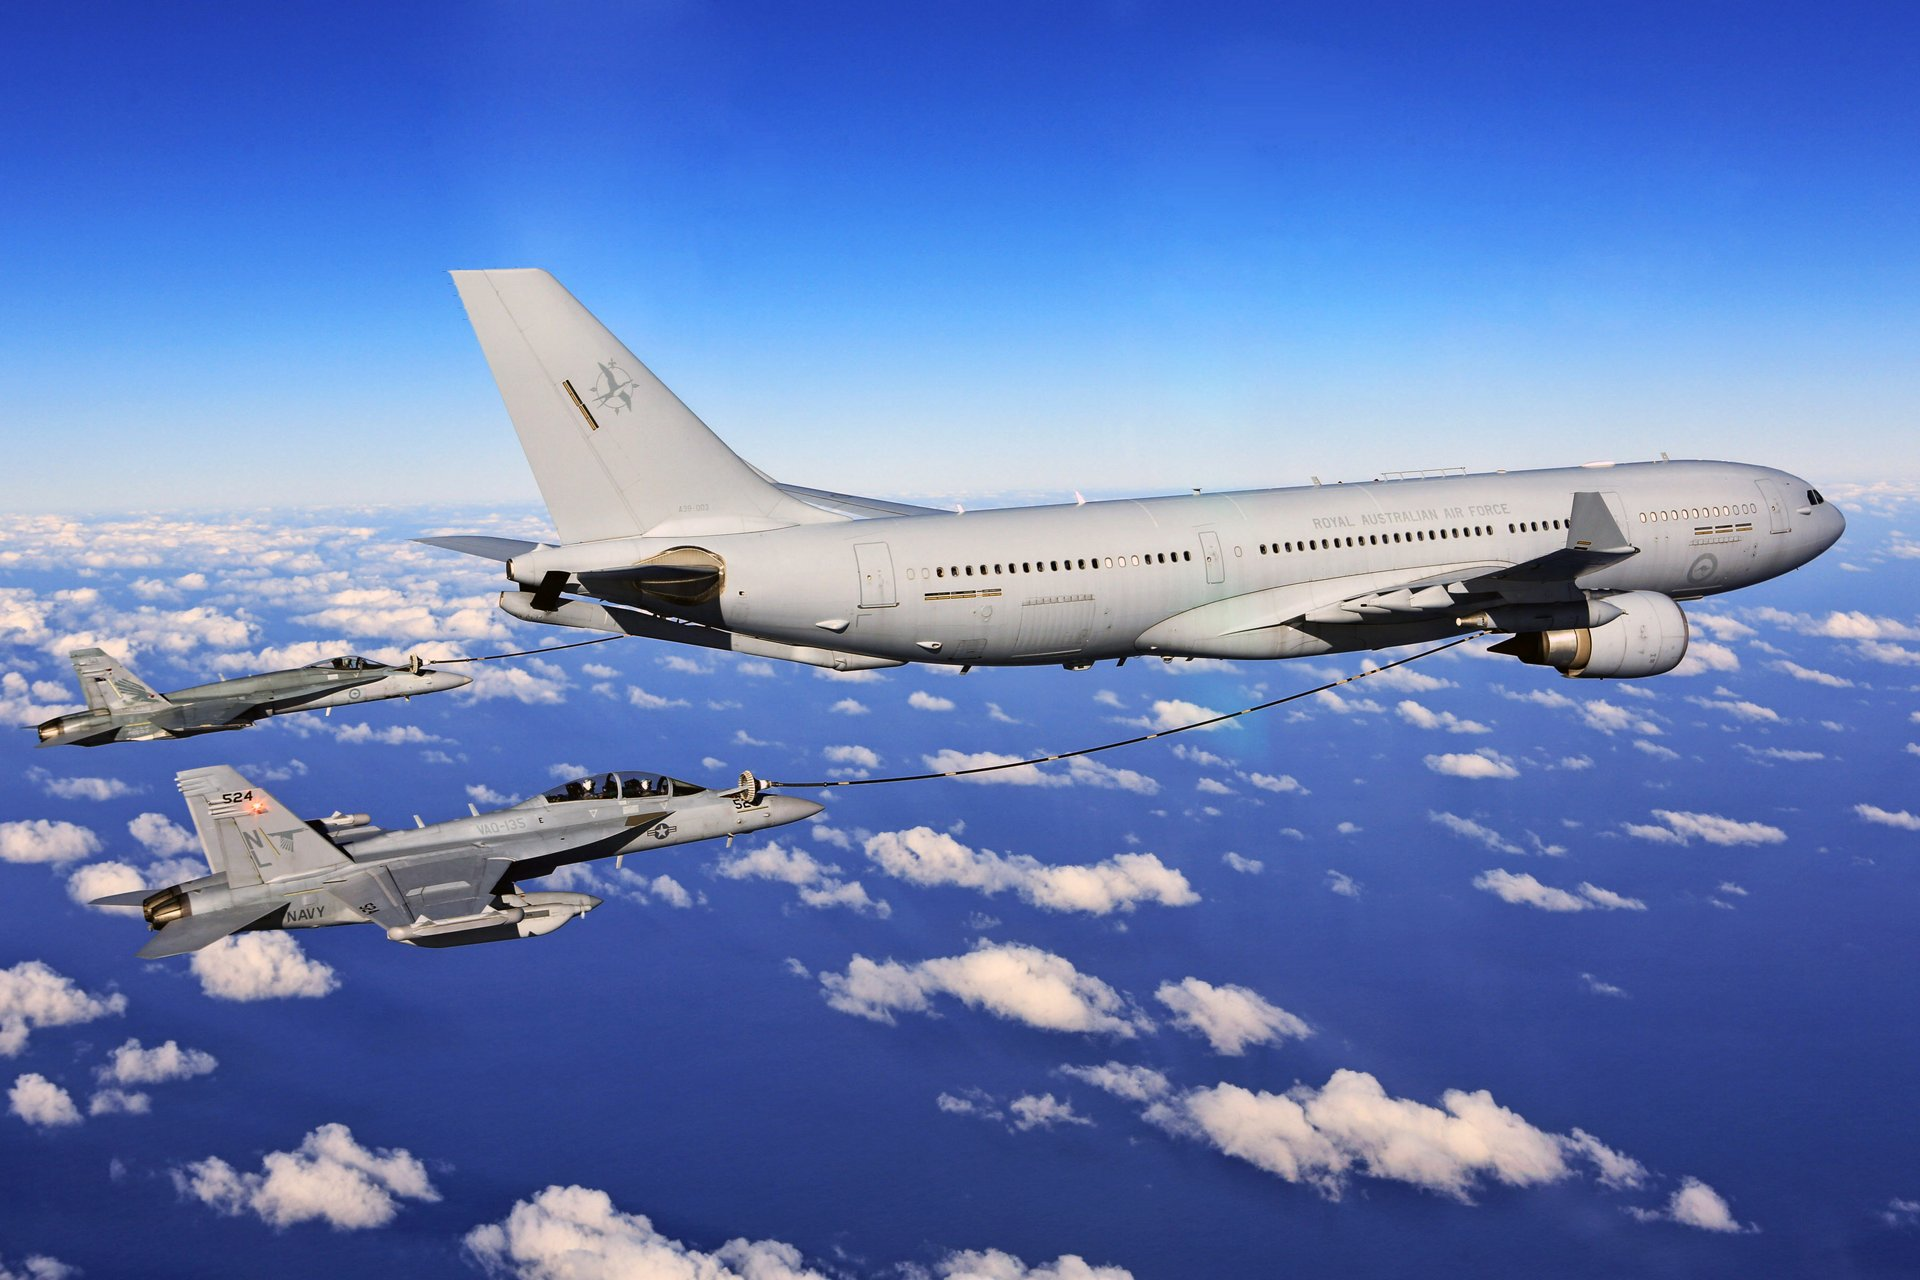 Airbus A330 Multi Role Tanker Transport (MRTT)